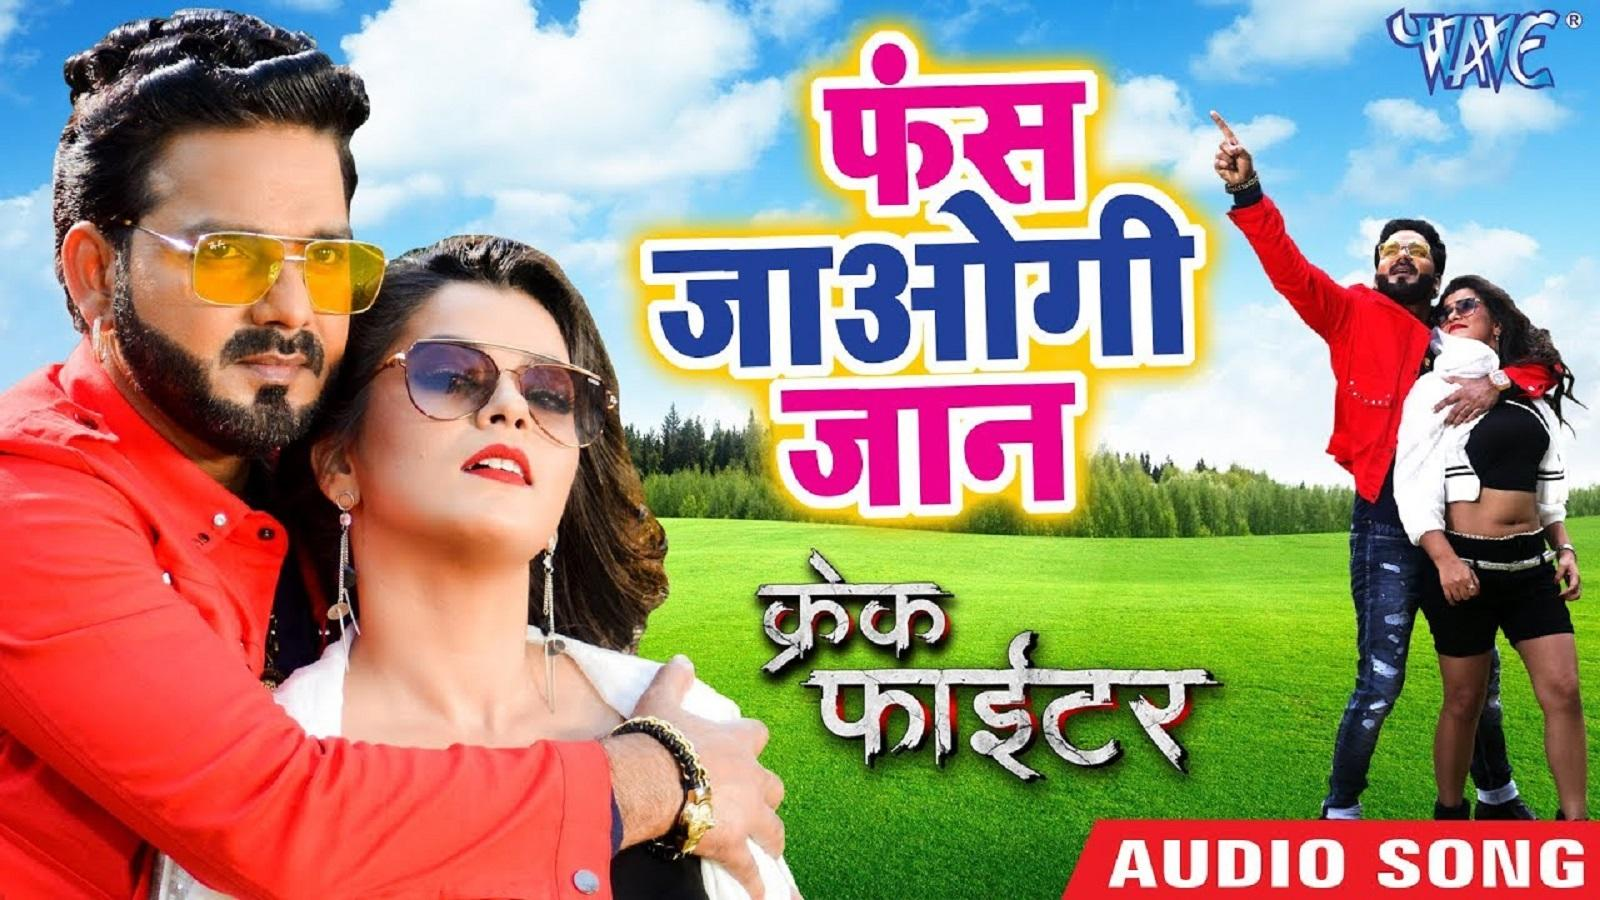 Latest Bhojpuri Song Fas Jaogi Jaan From Crack Fighter Ft Pawan Singh And Nidhi Jha